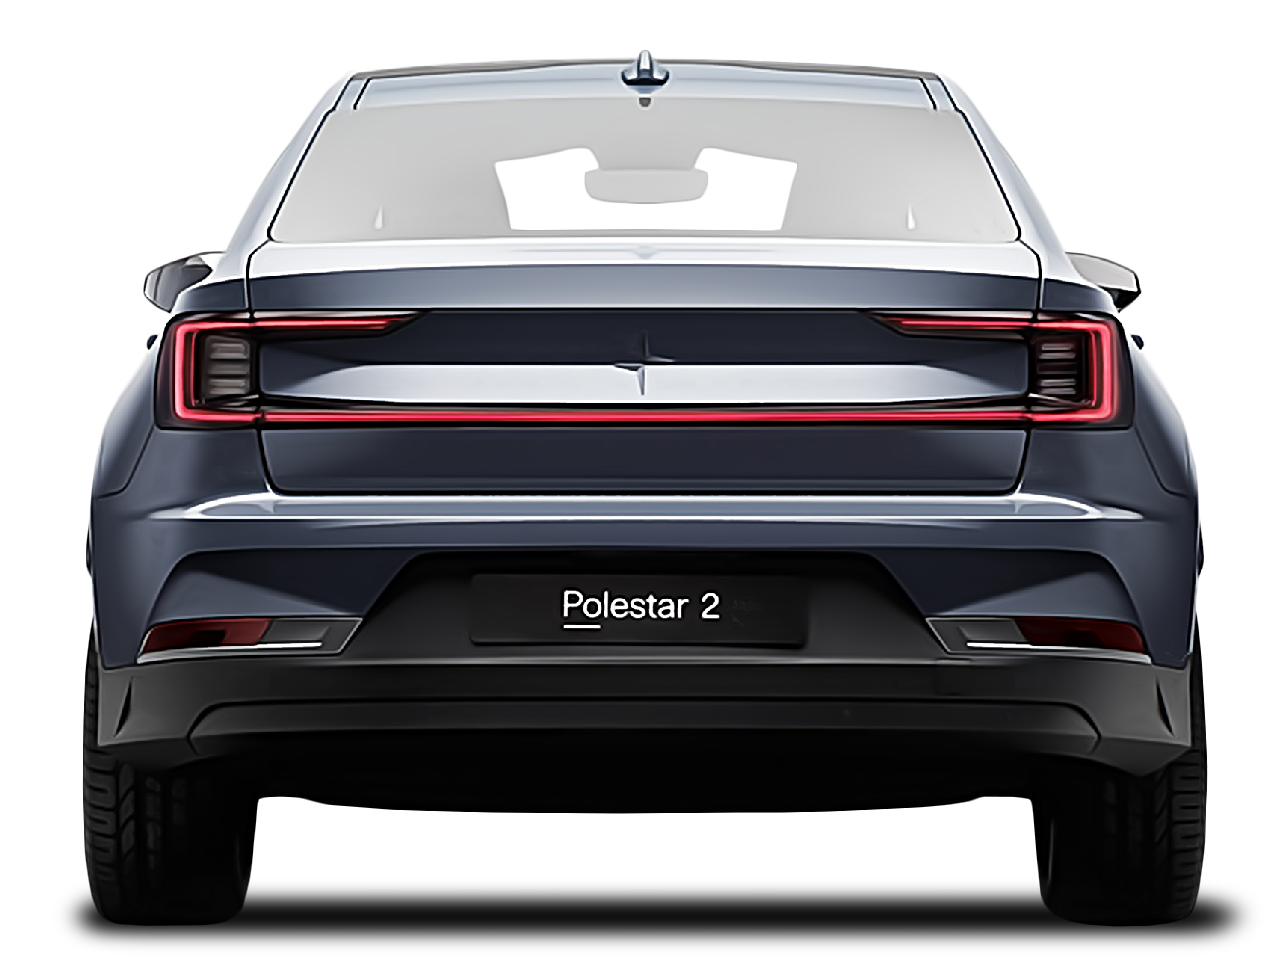 Trunk view of the Polestar 2